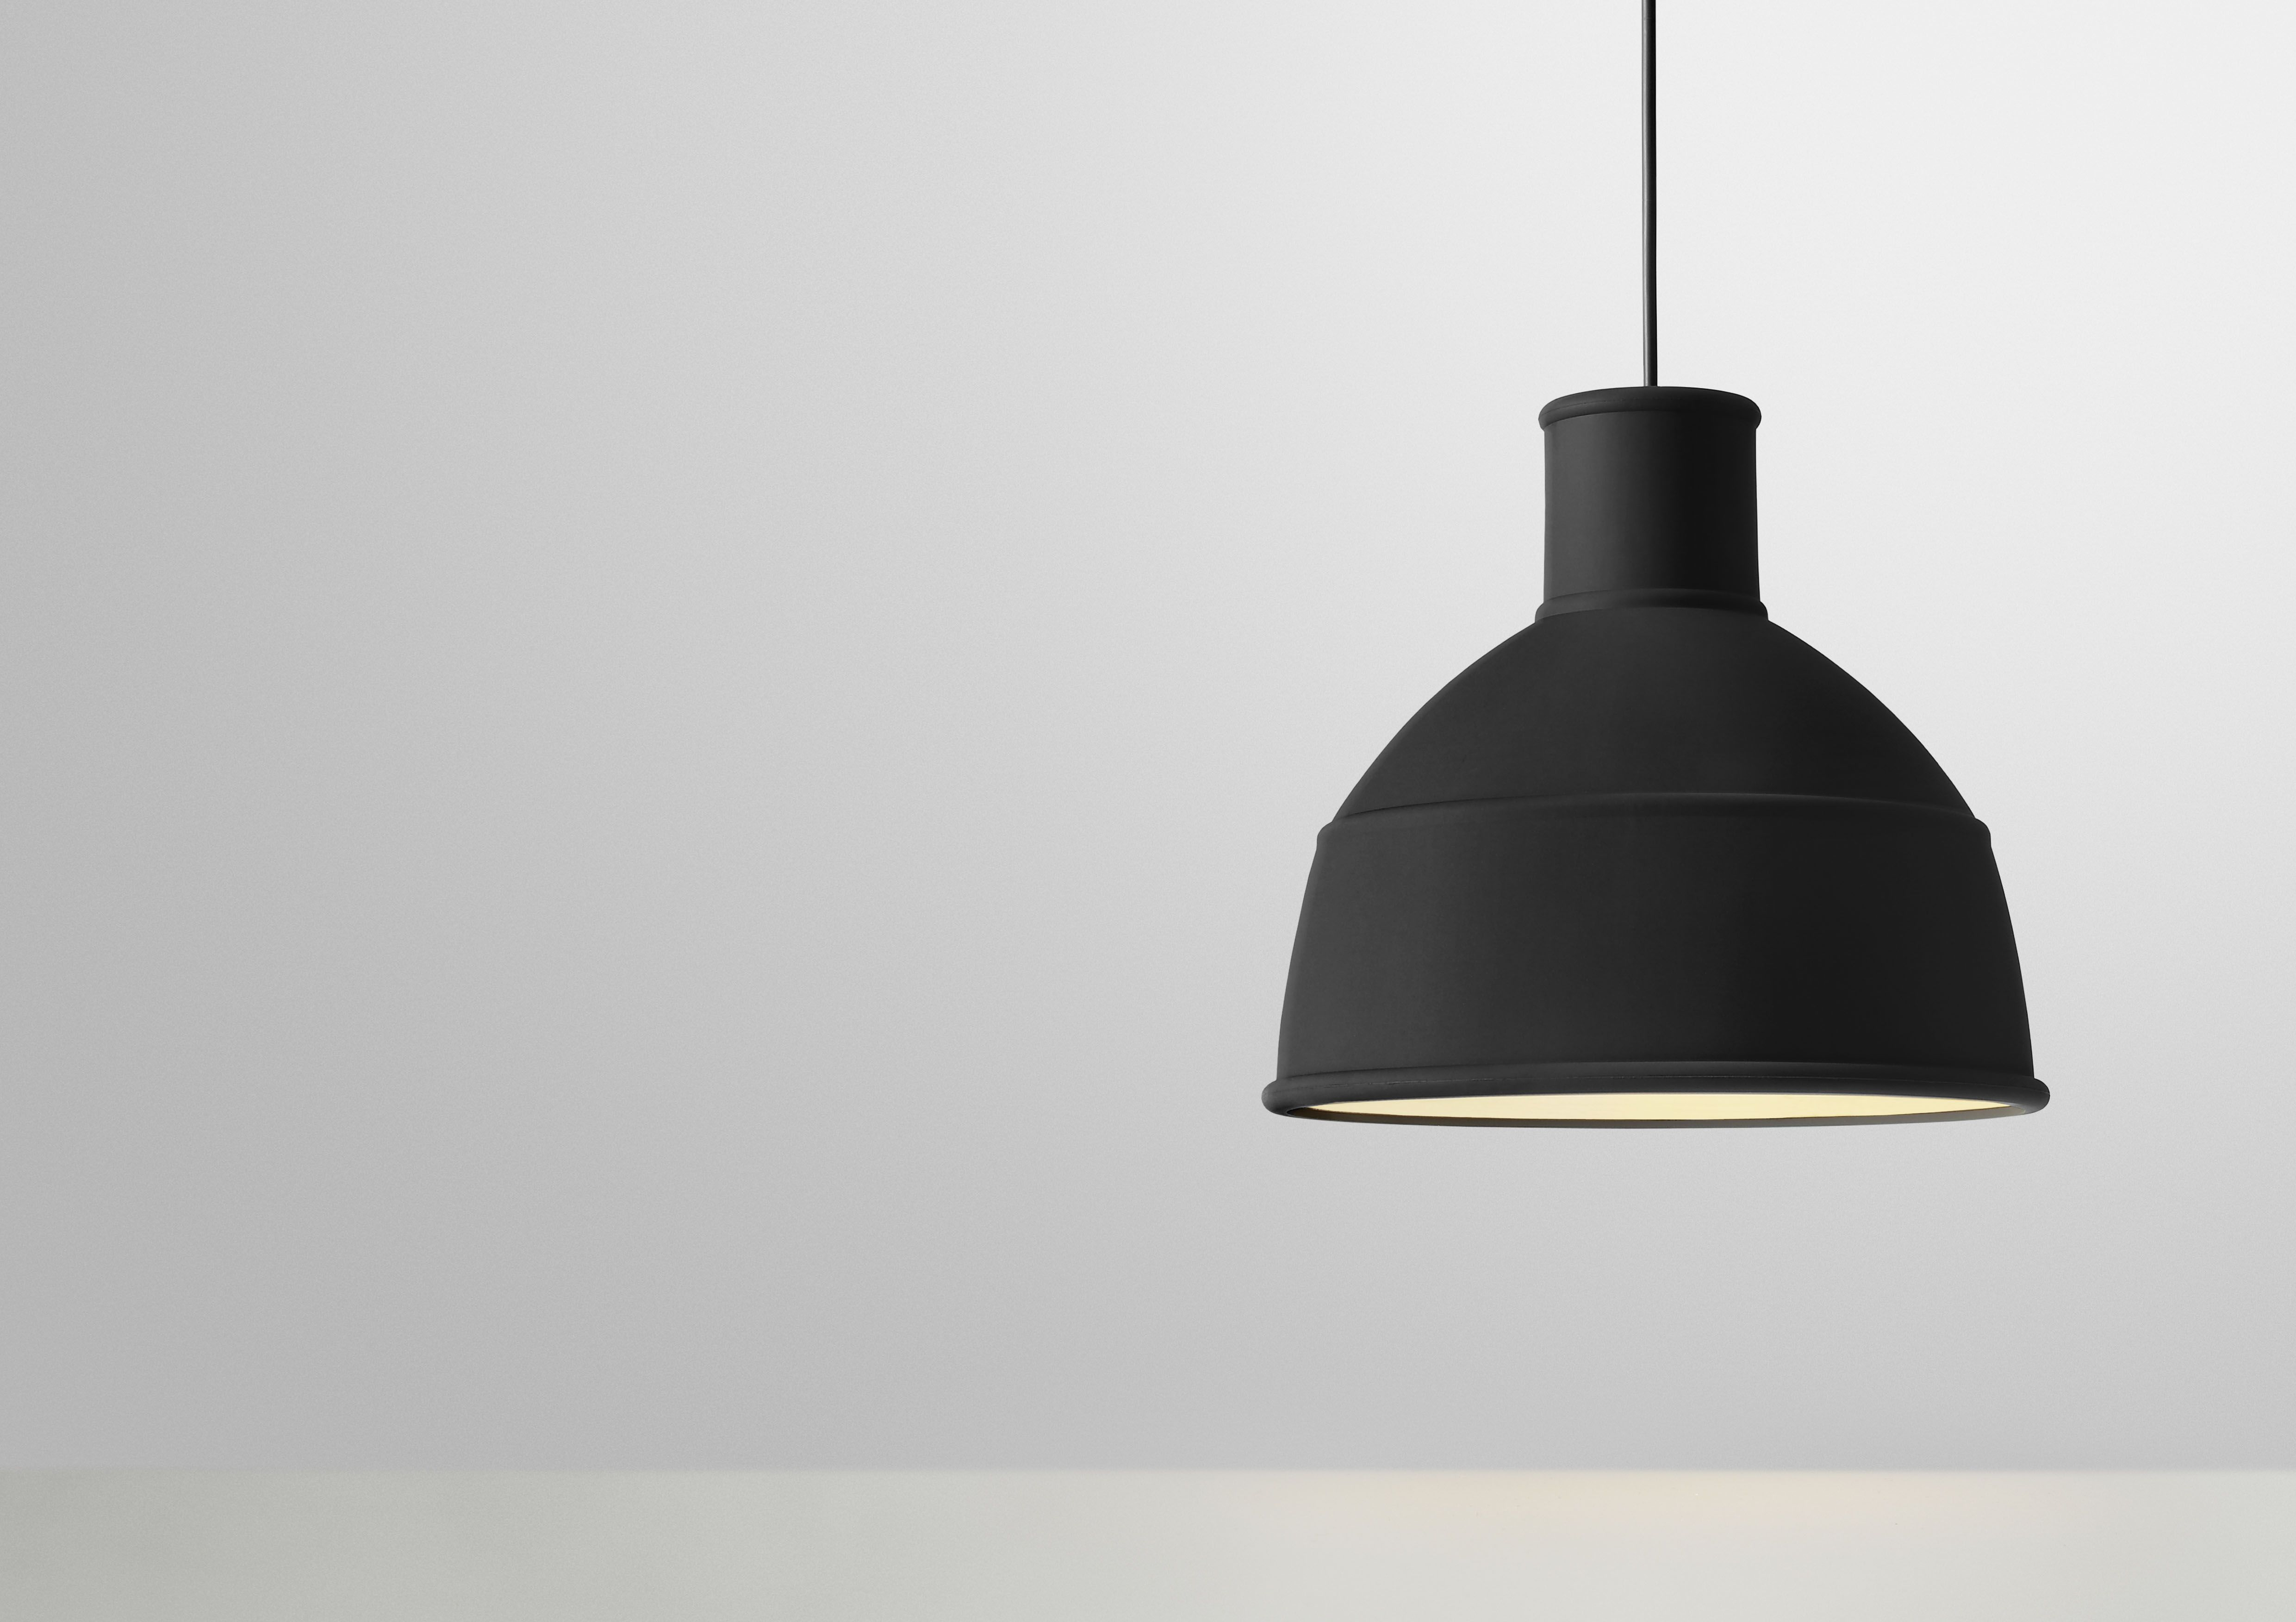 Unfold / Design by Form us with love